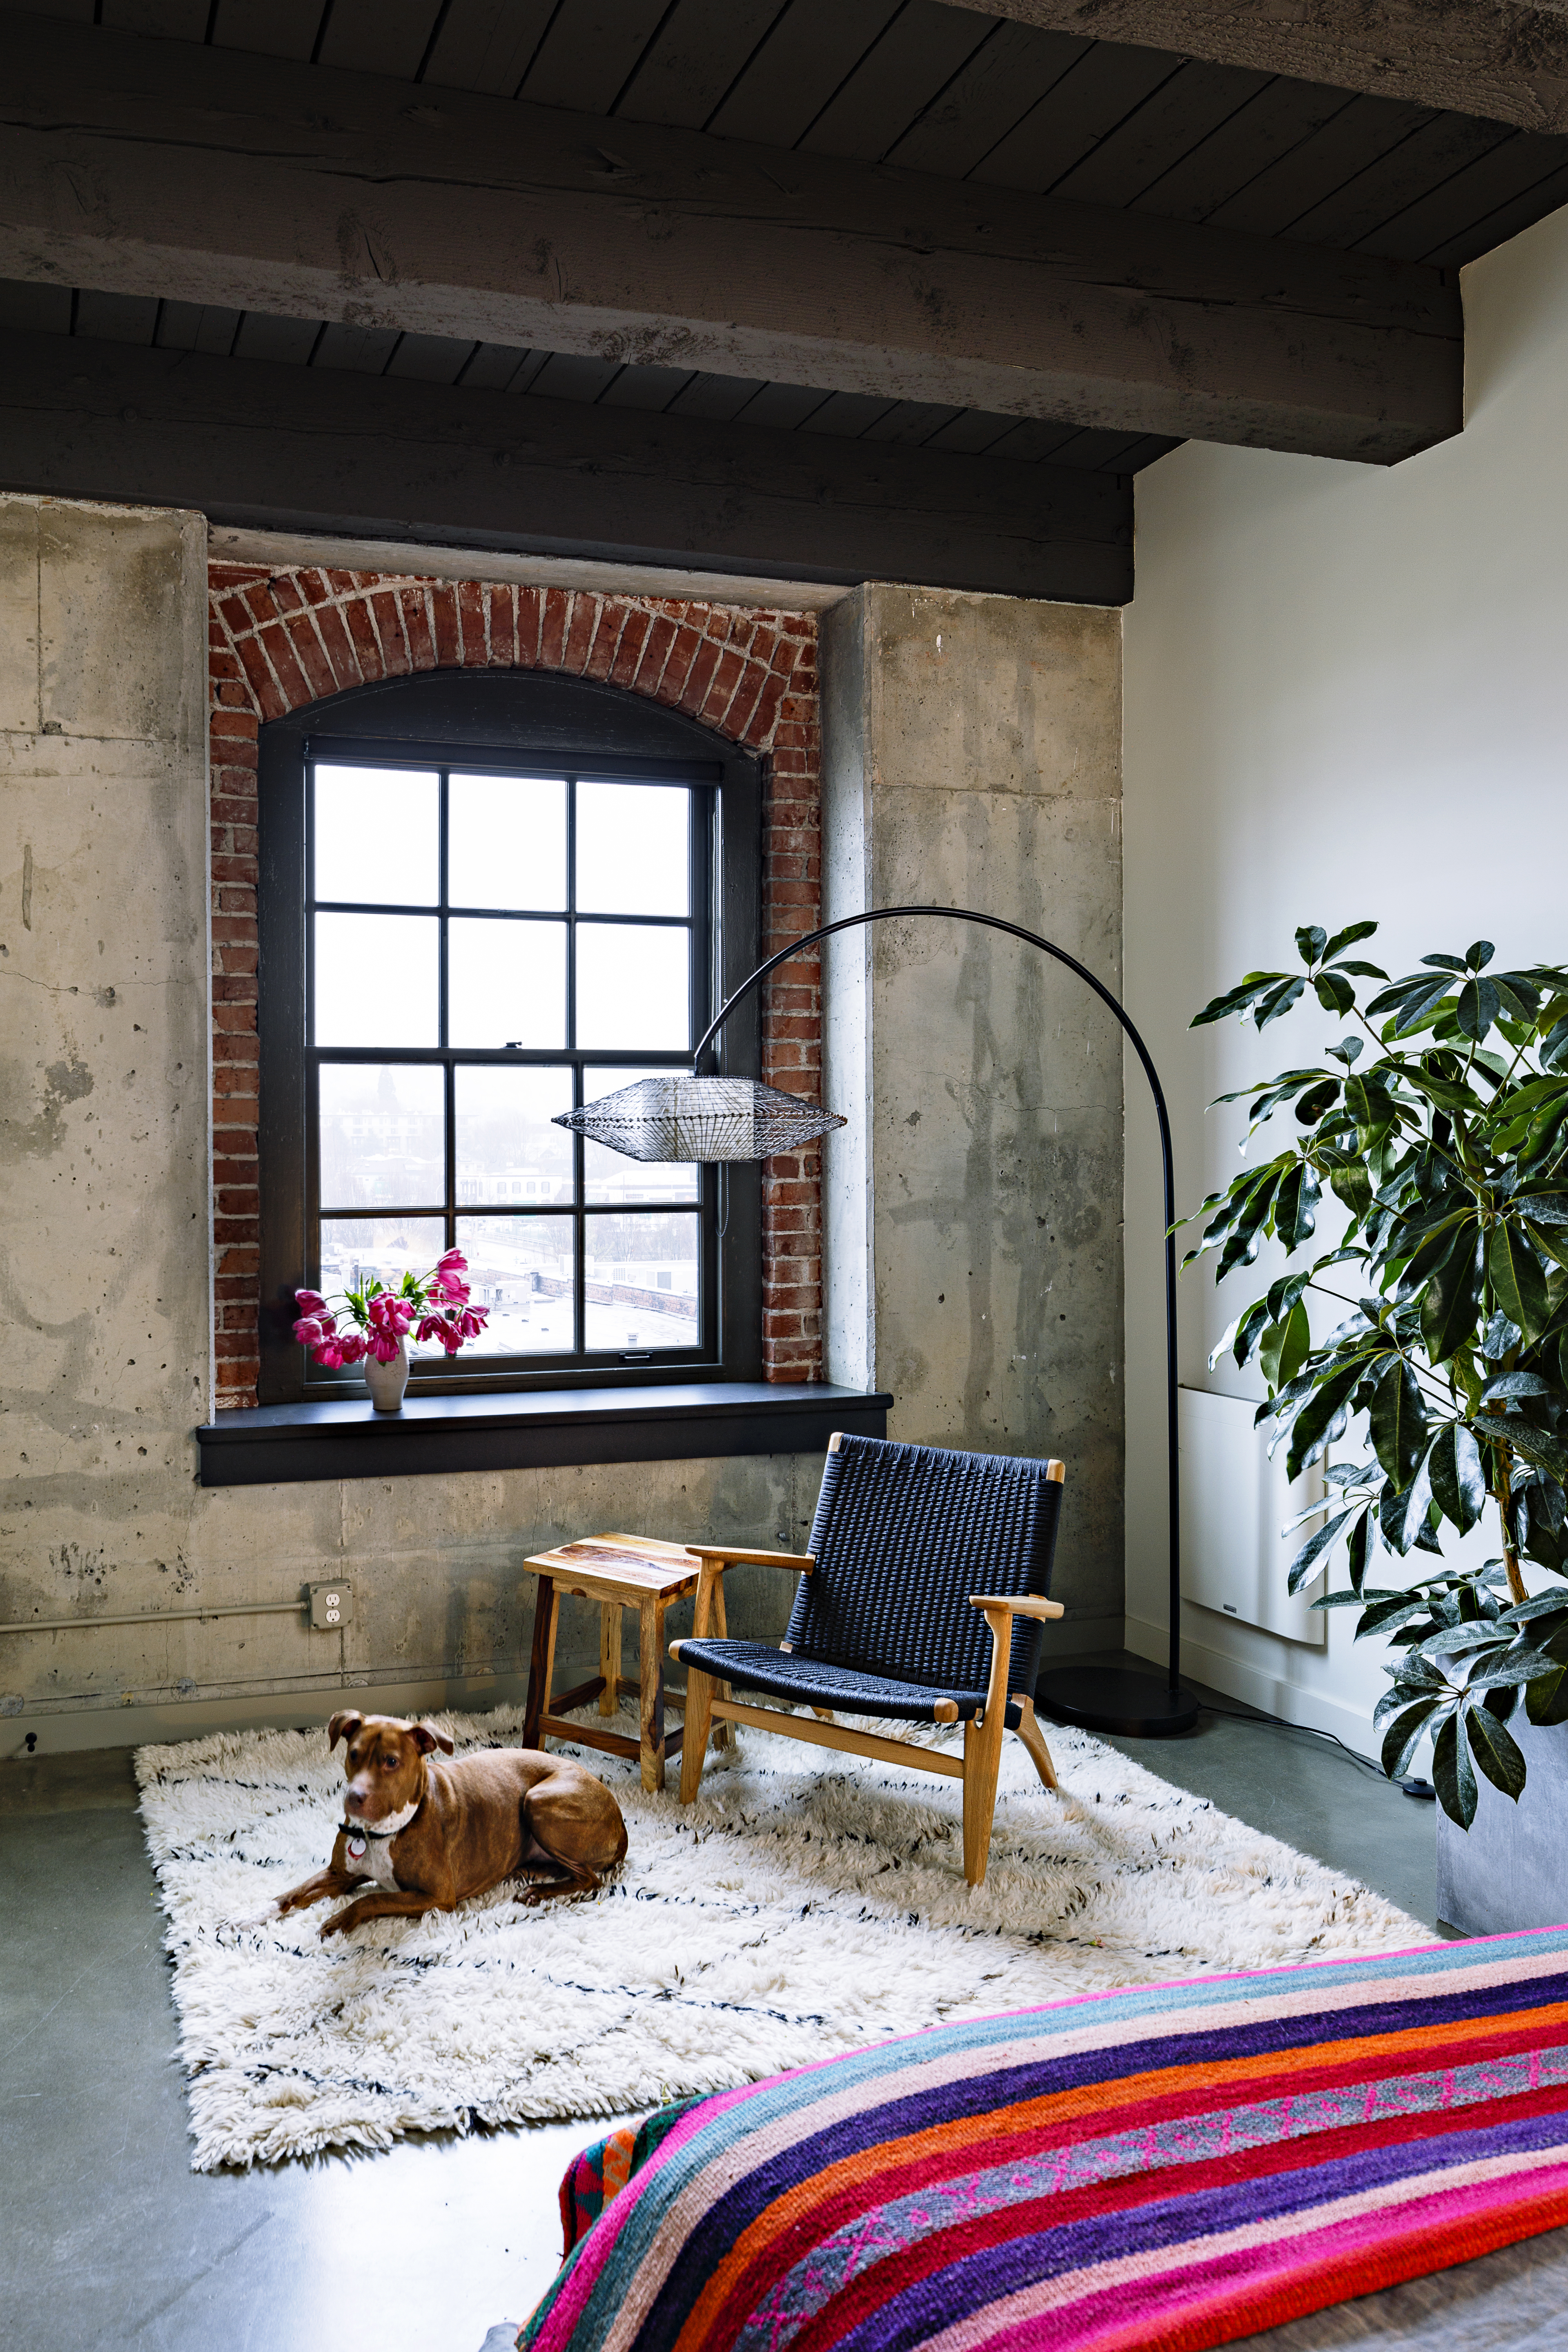 10 Smart Ideas from a Small Loft - Sunset Magazine